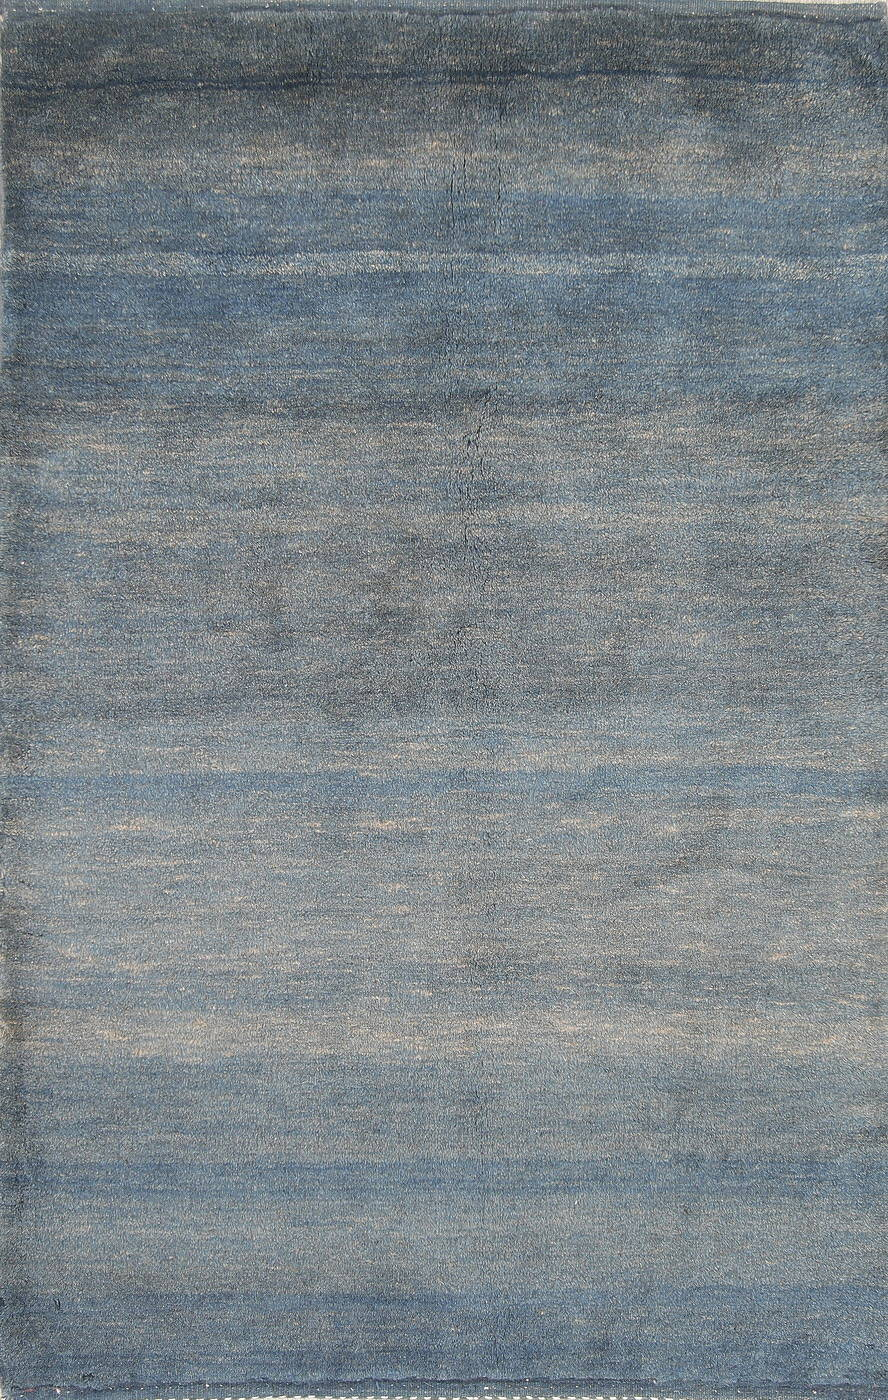 Hand-Knotted Contemporary Gabbeh Shiraz Persian Wool Rug 3x5